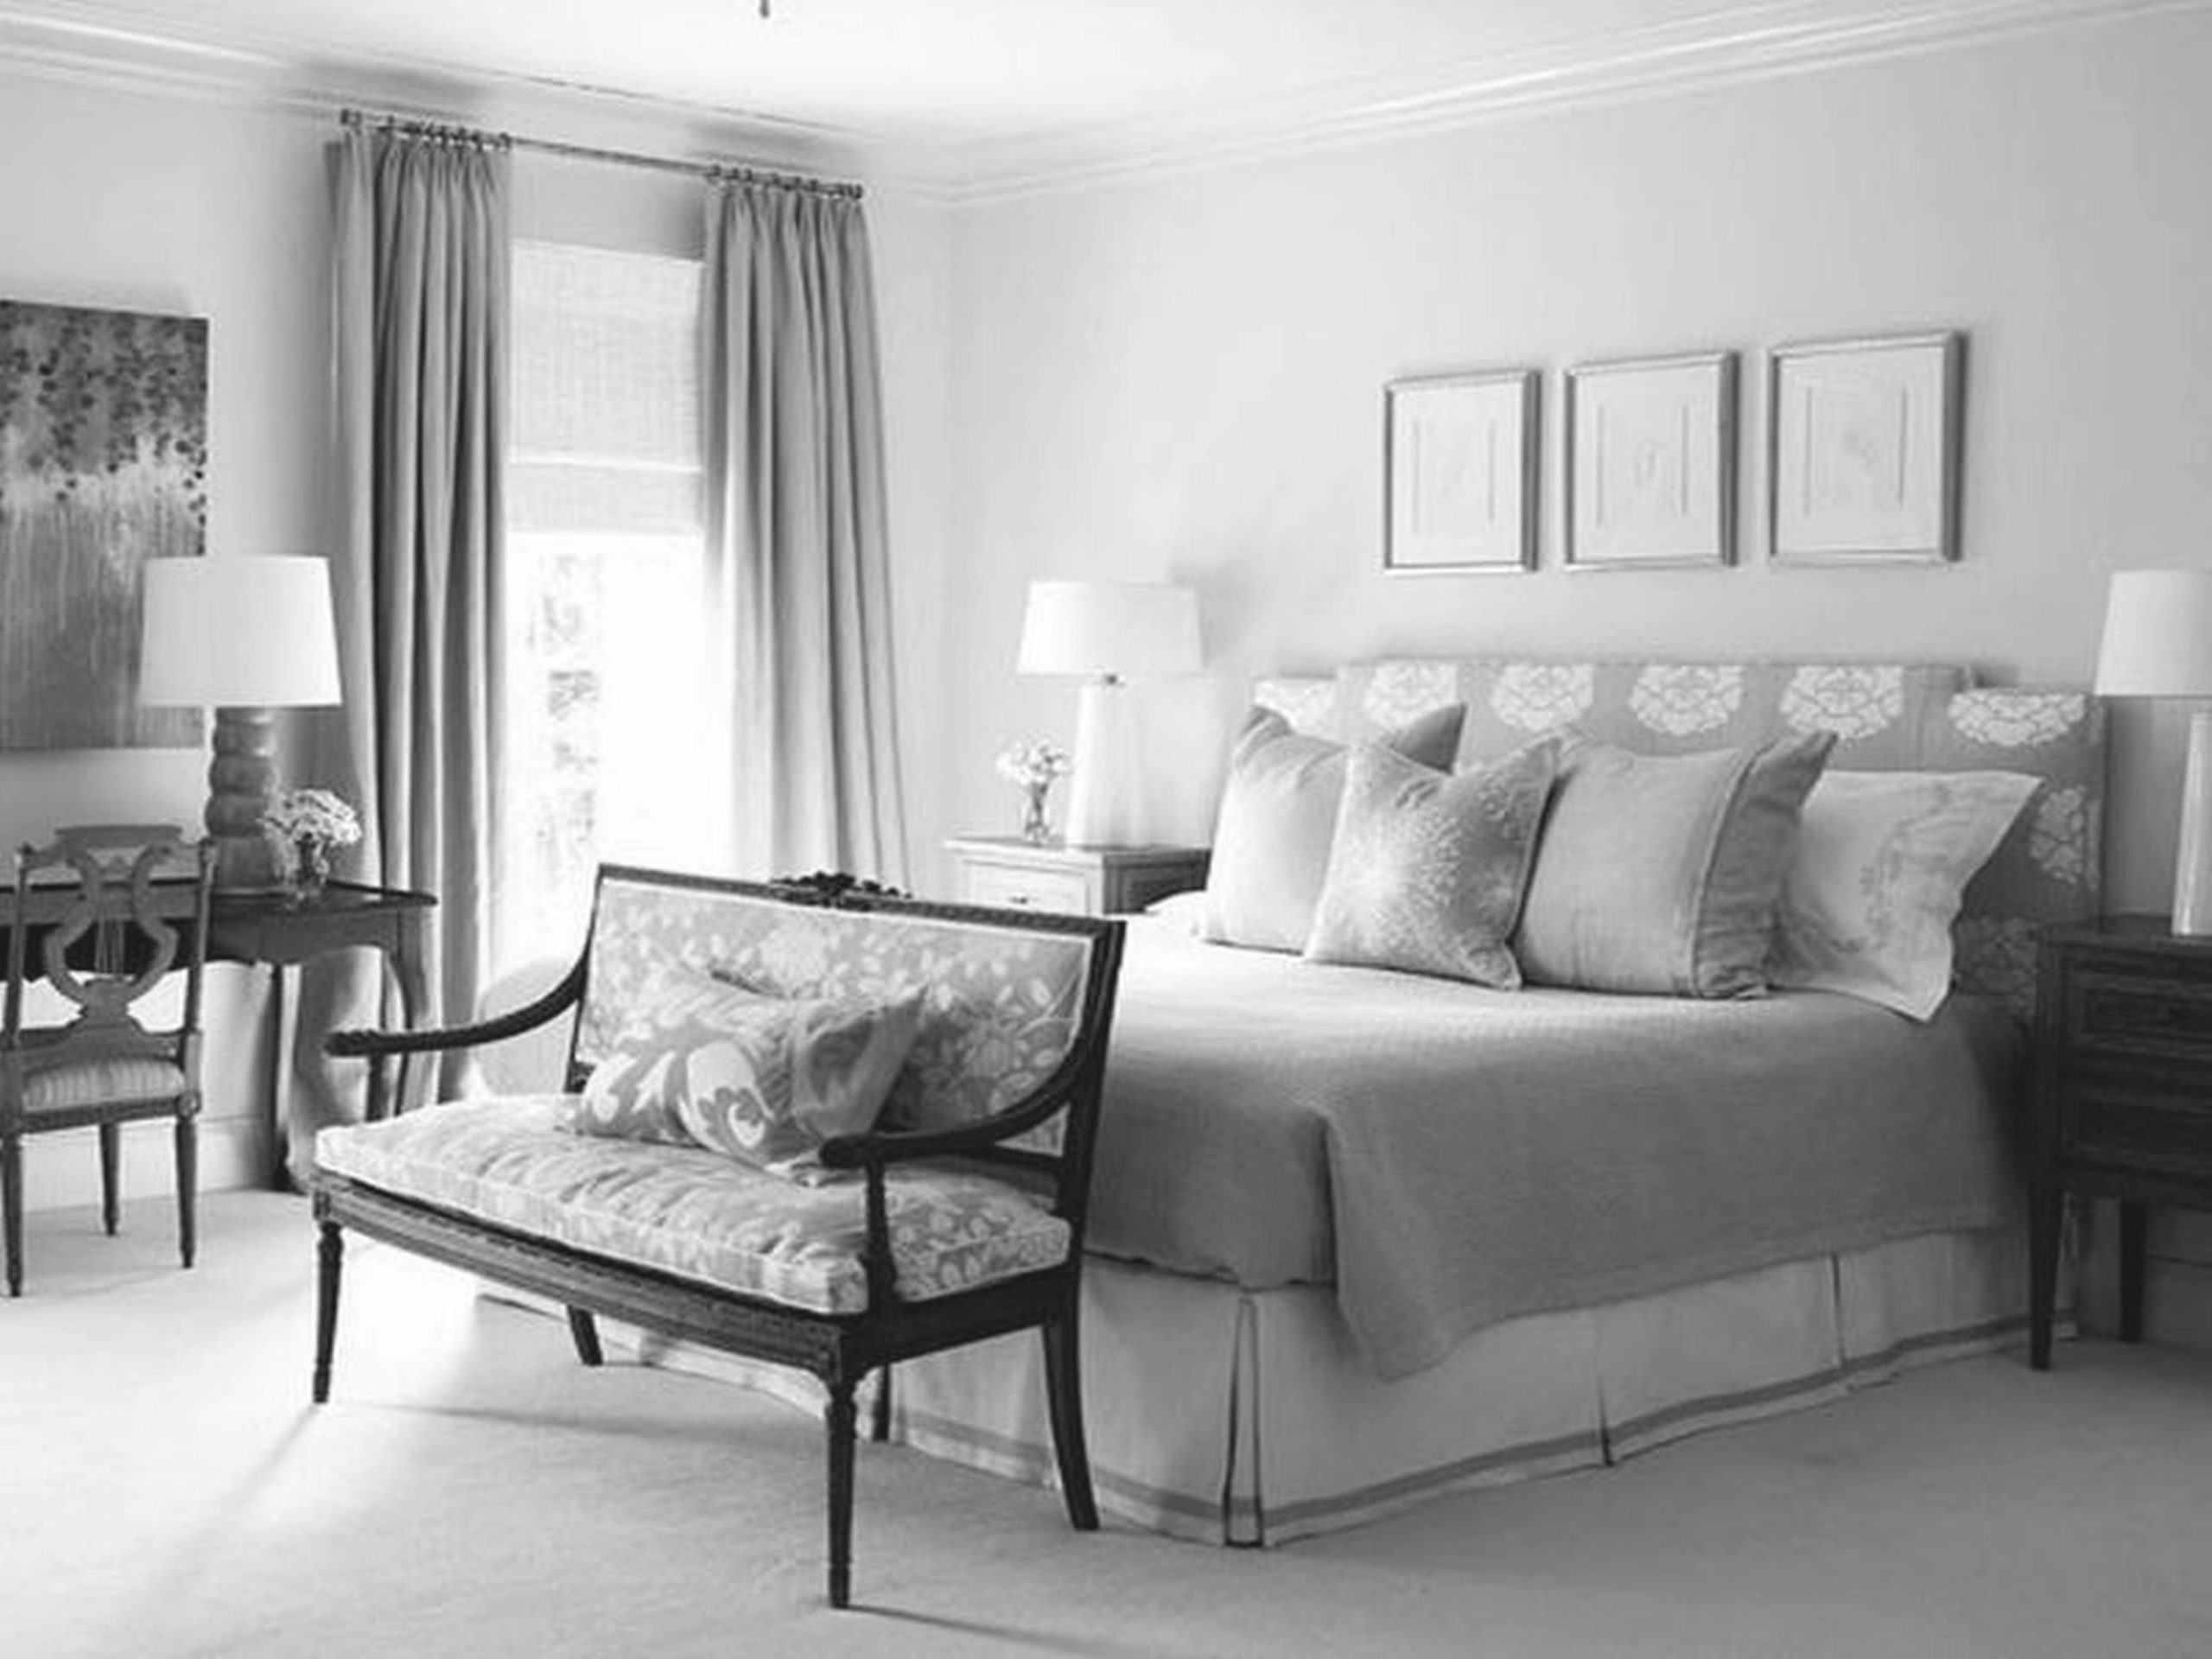 46 Incredible Grey Design Decor That You Can Do For Less in Bedroom Decorating Ideas Grey And White